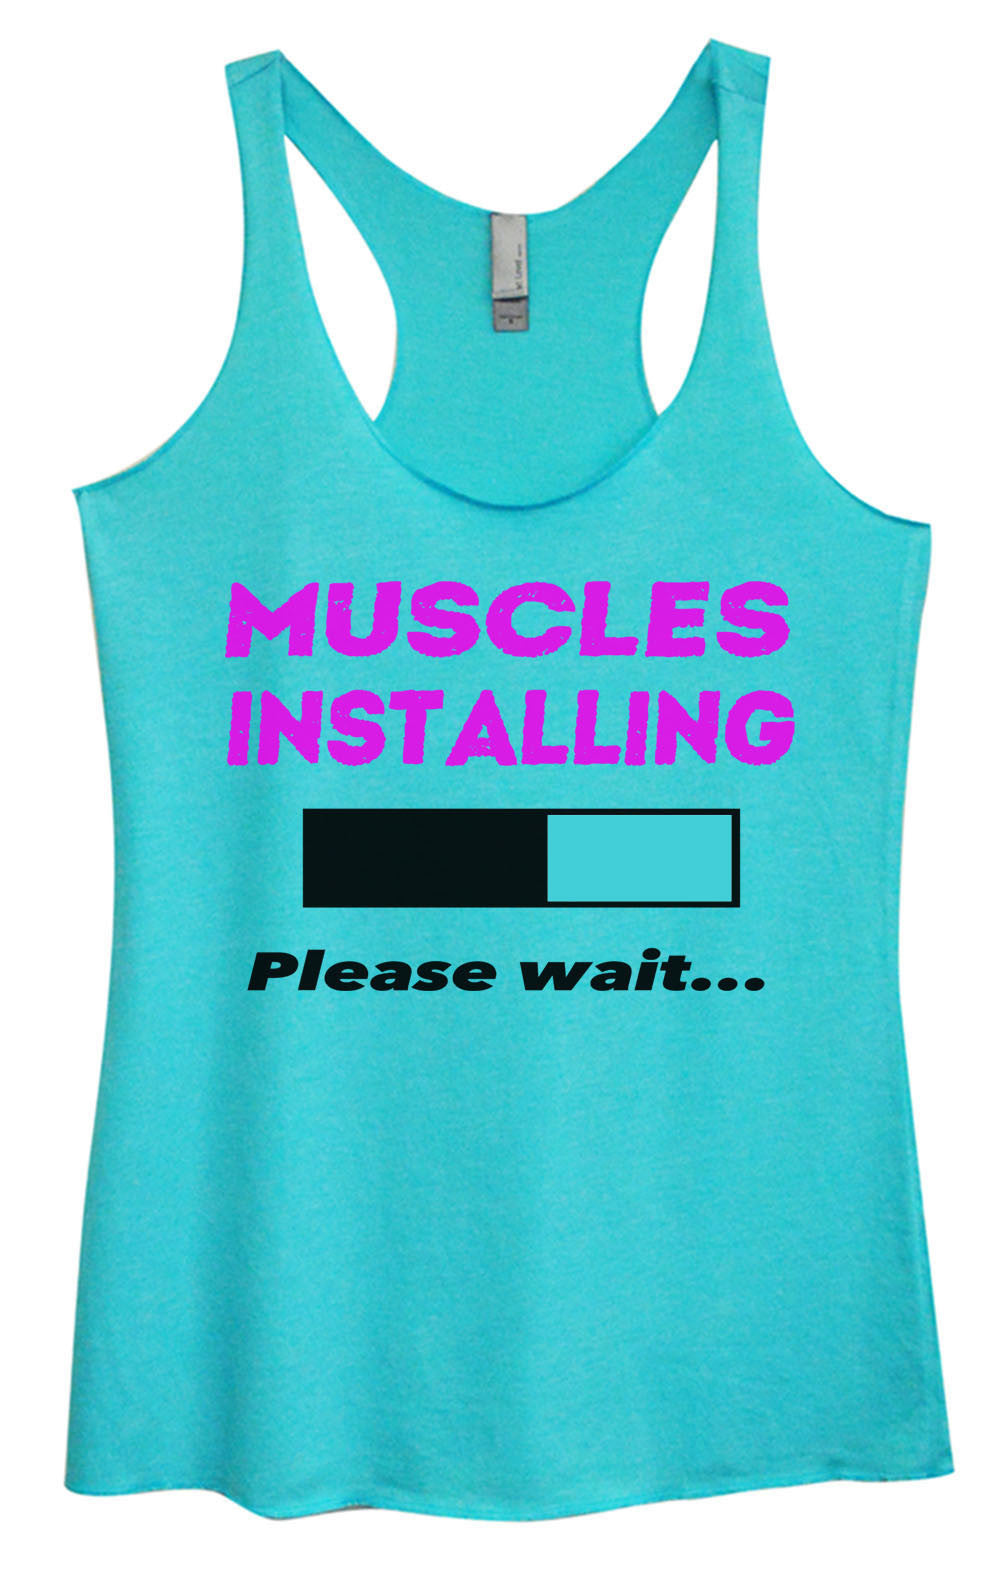 Womens Fashion Triblend Tank Top - Muscles Installing Please Wait... - Tri-762 - Funny Shirts Tank Tops Burnouts and Triblends  - 4